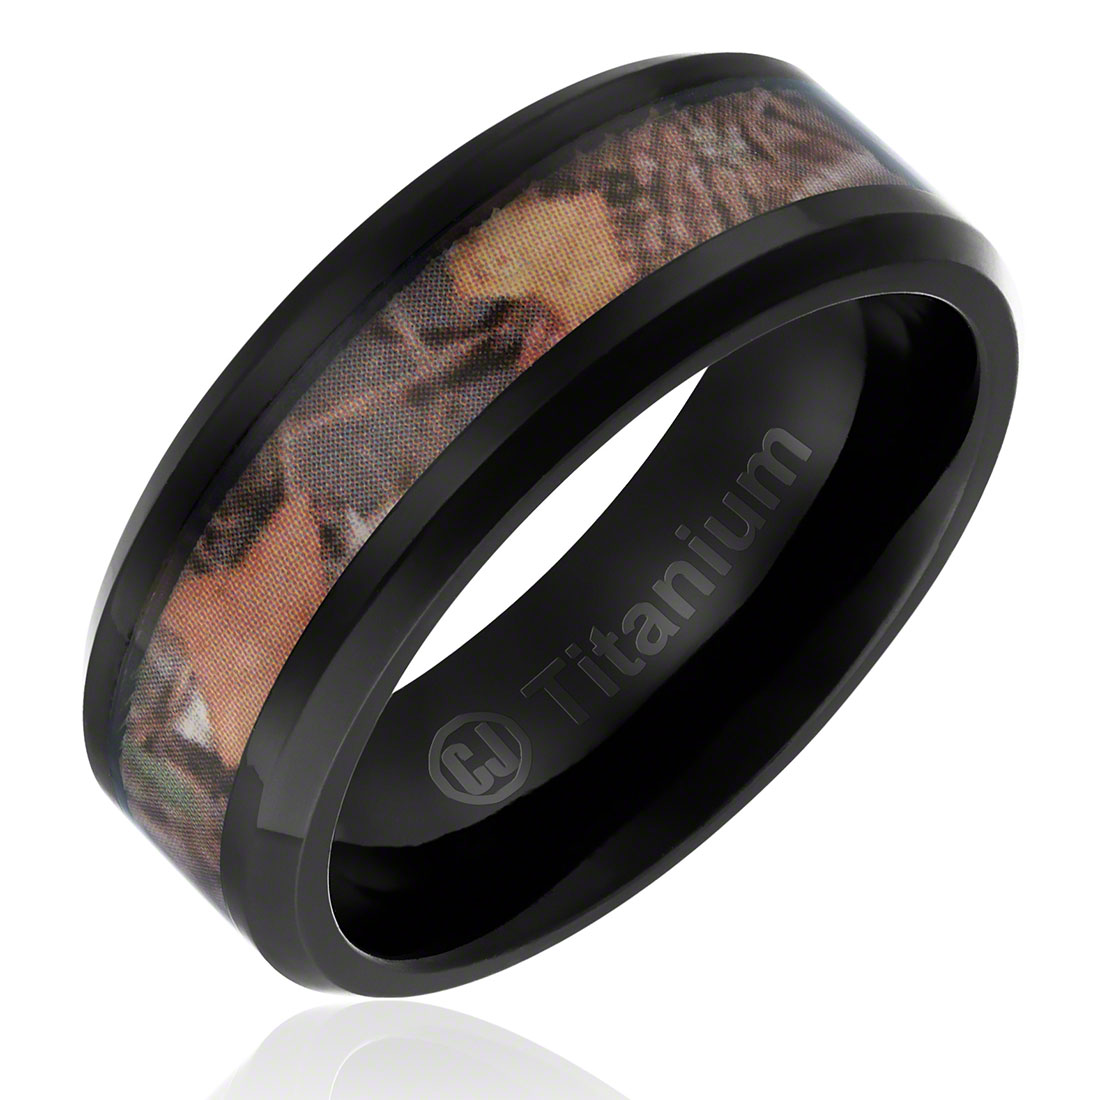 Mens Camo Hunting Wedding Band in Titanium 8MM Ring Black Plated with Camouflage Inlay - Beveled Edges